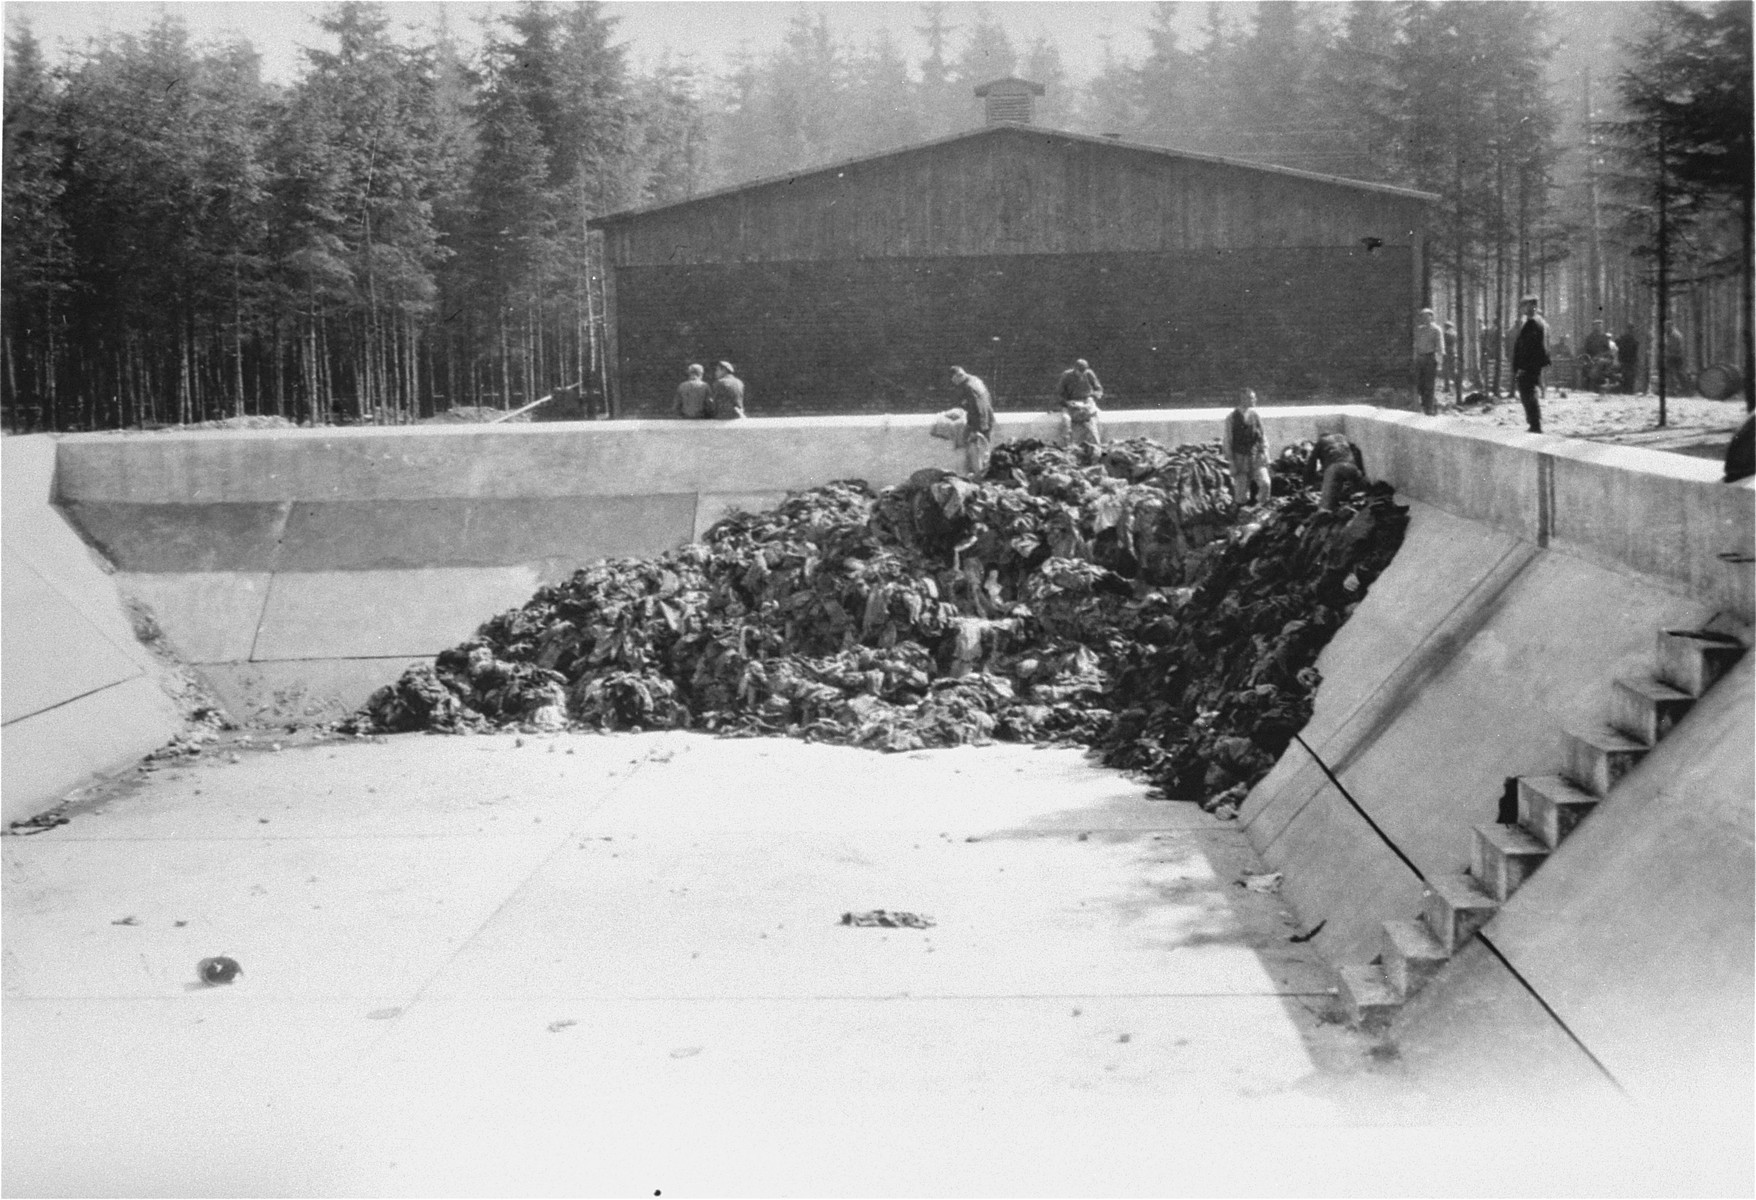 View of the pool in the Ebensee concentration camp where clothing that has been stripped off the dead is being collected.